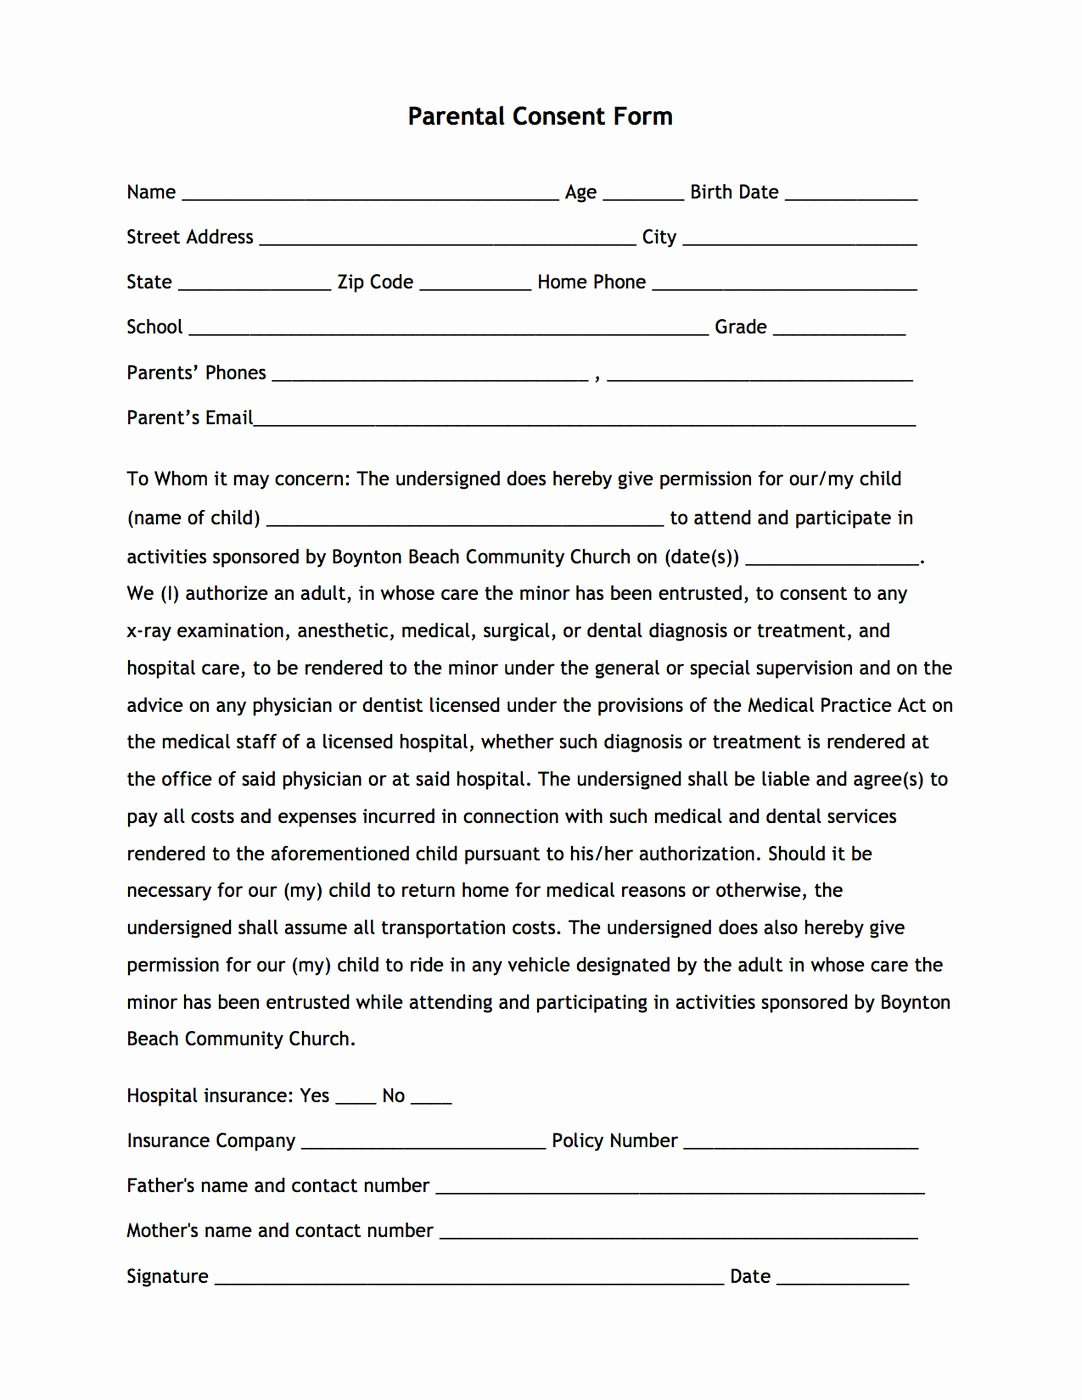 Parental Consent form Template Unique Boynton Beach Munity Church Boynton Beach Fl